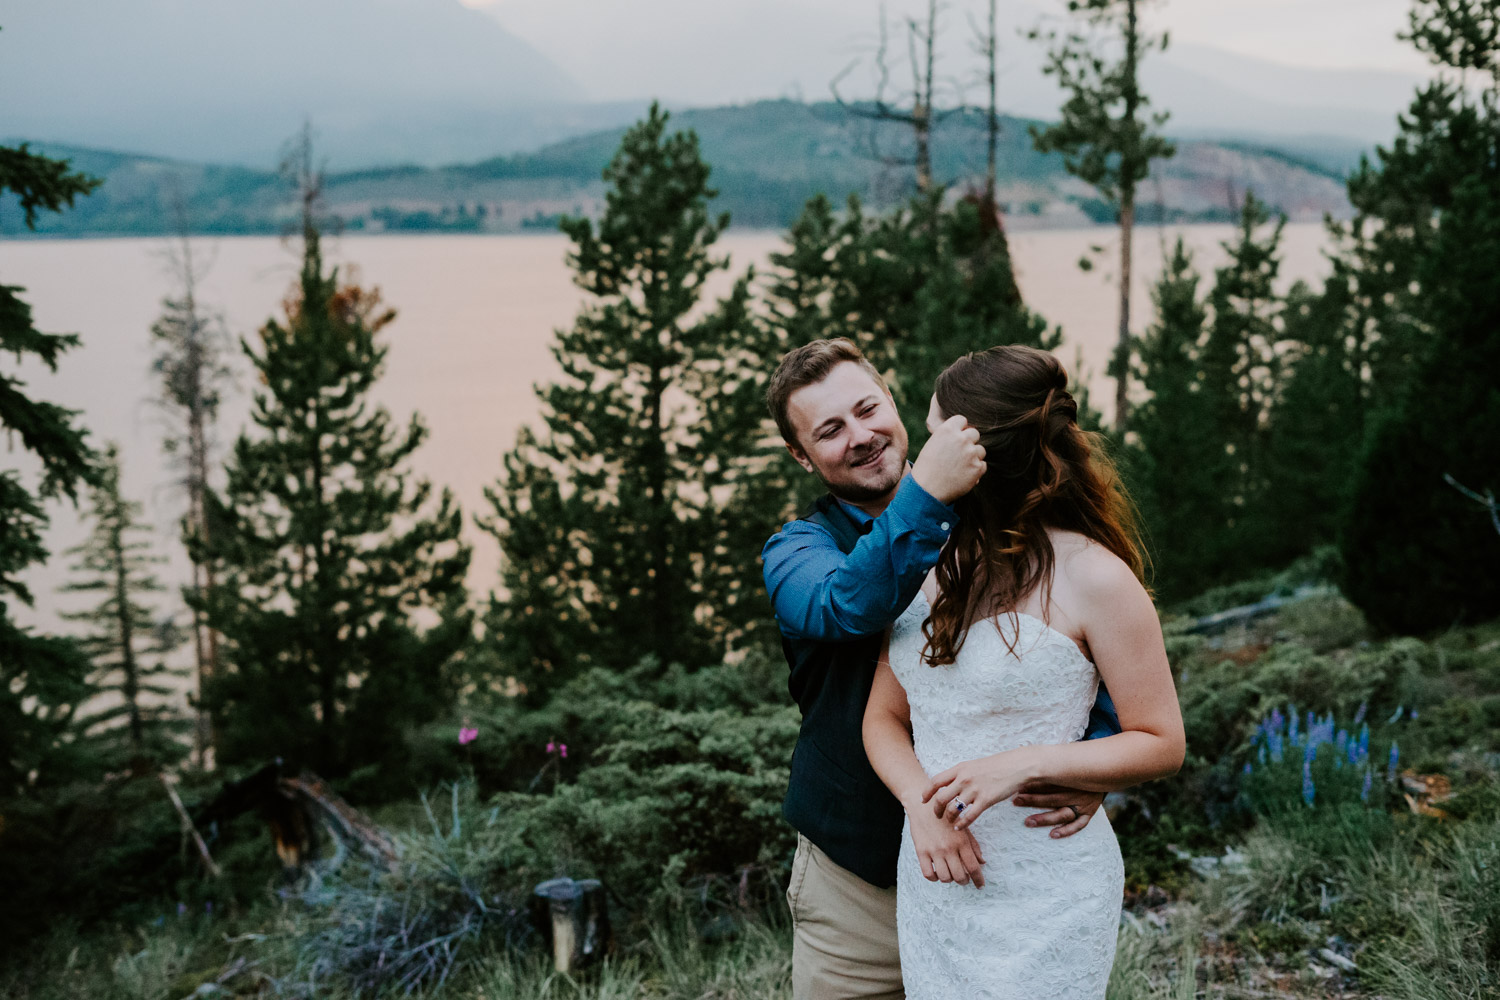 Beth_Jeff_Colorado_Wedding_MegONeillPhotography__180721_128